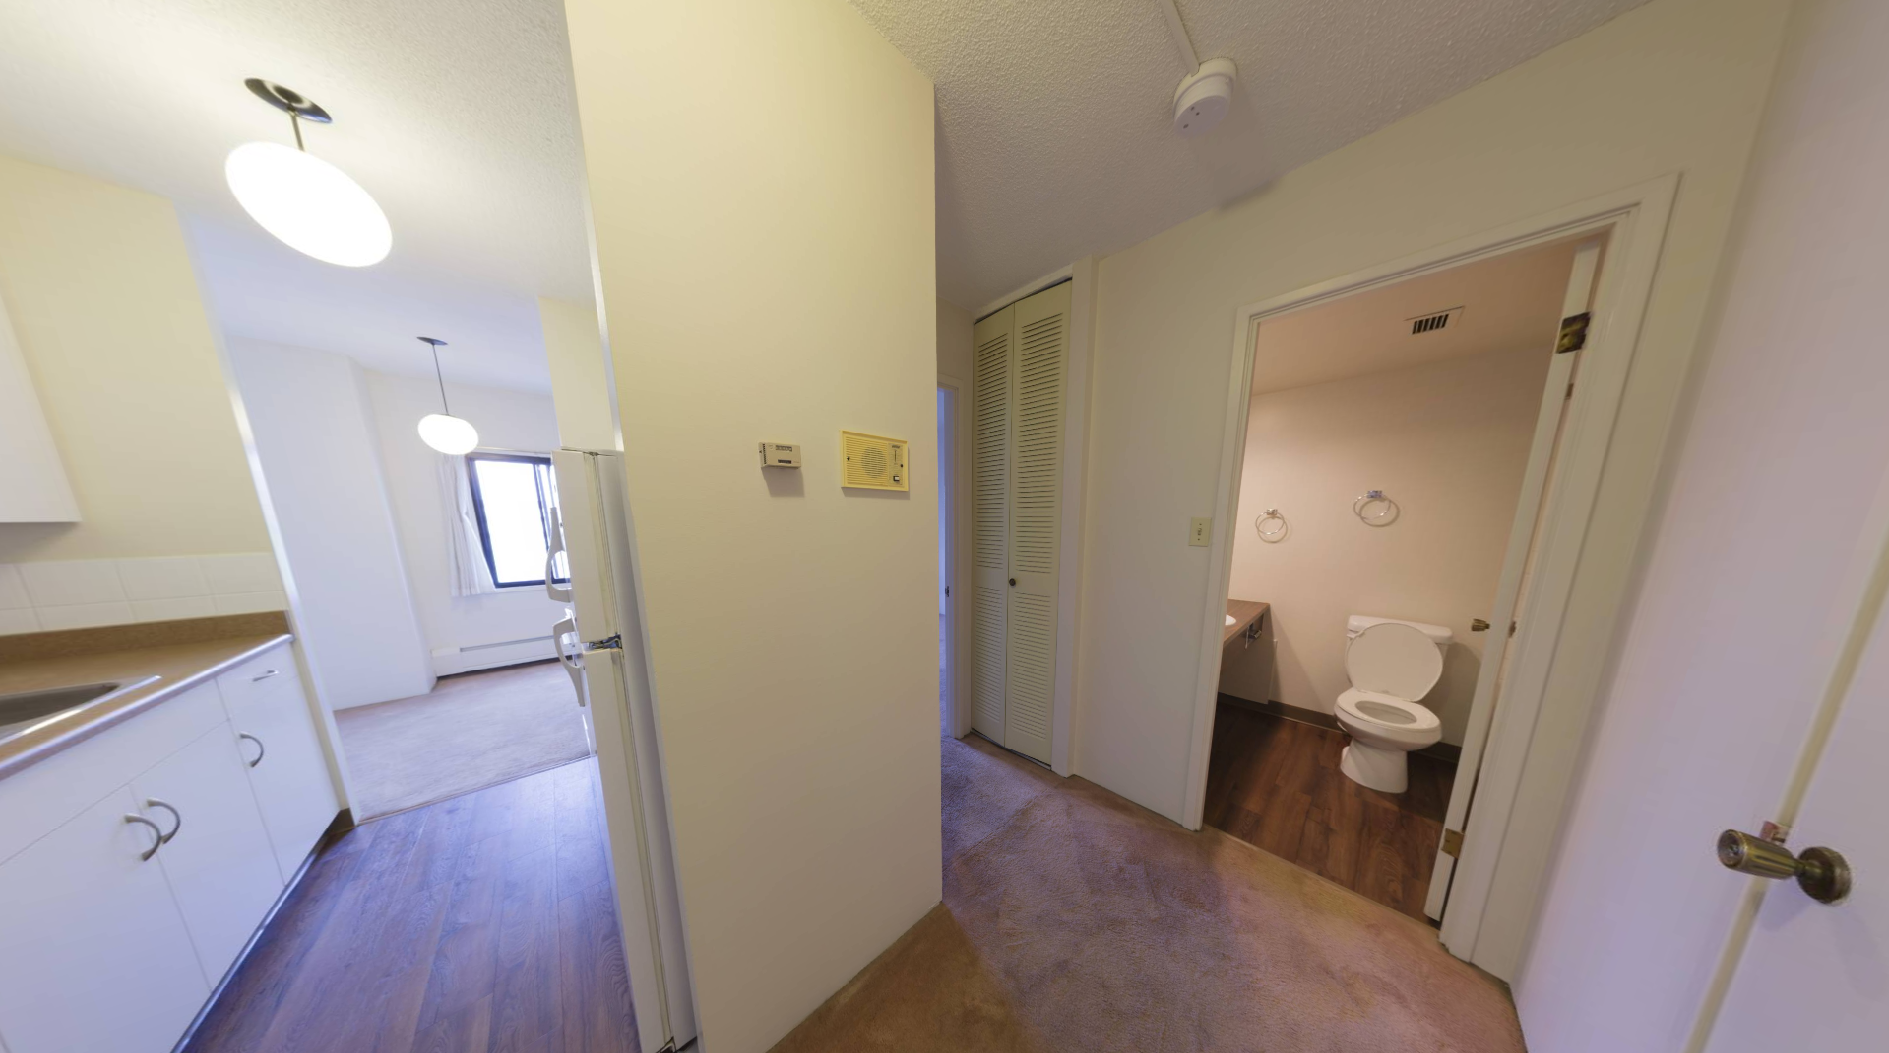 University Of Alberta Student Residences    Take A Look Inside A One  Bedroom Apartment In